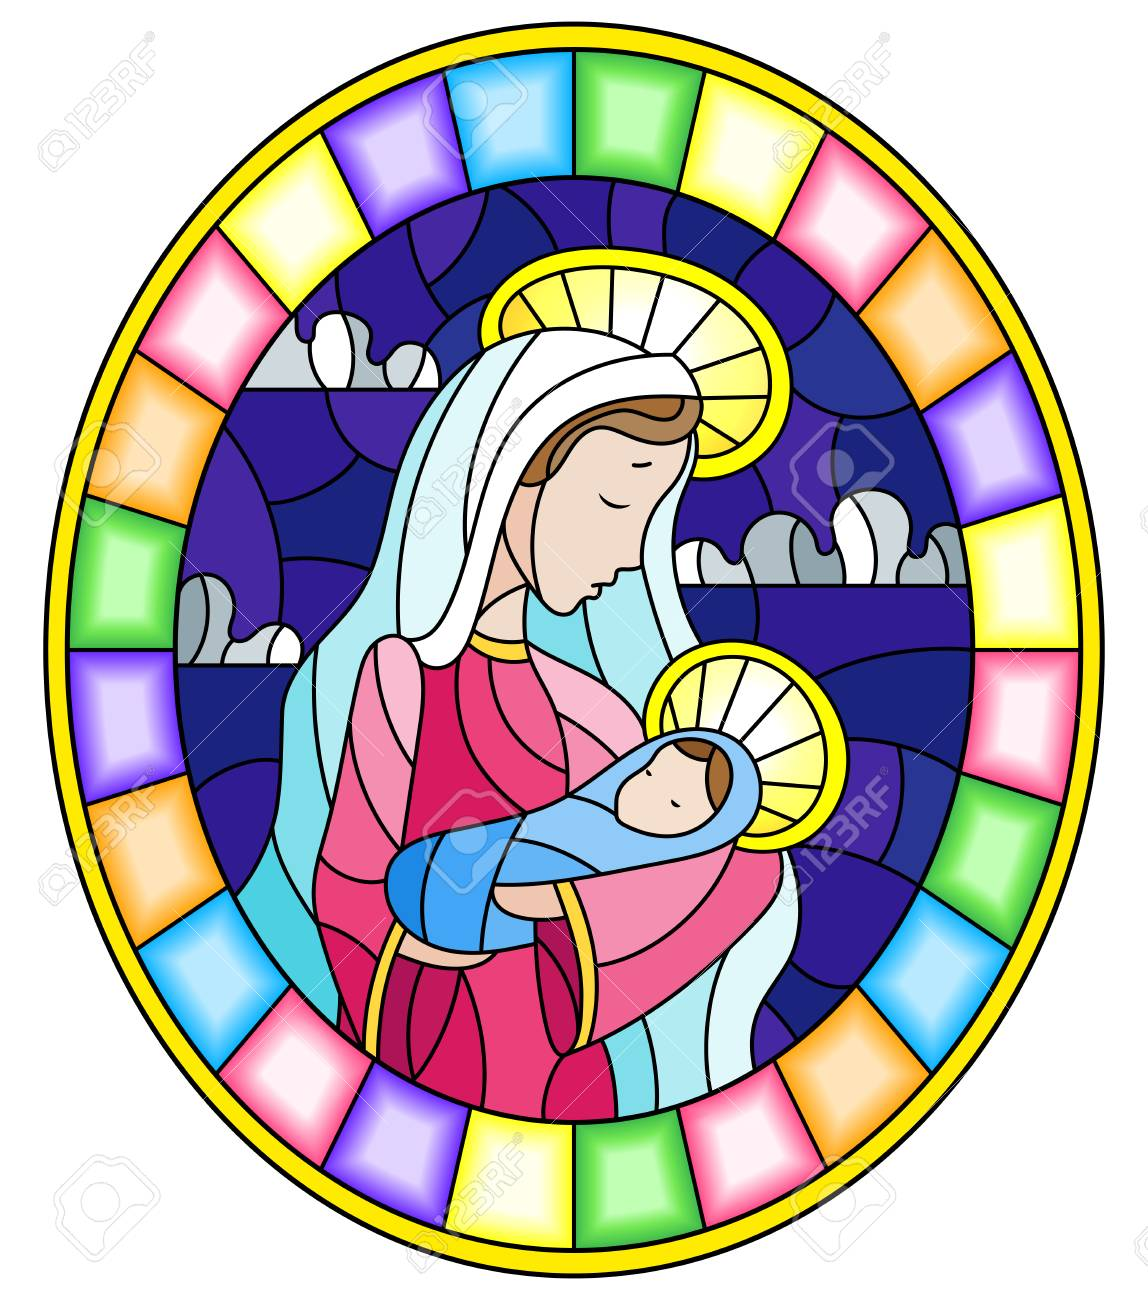 hight resolution of illustration in stained glass style on biblical theme jesus baby with mary abstract figures